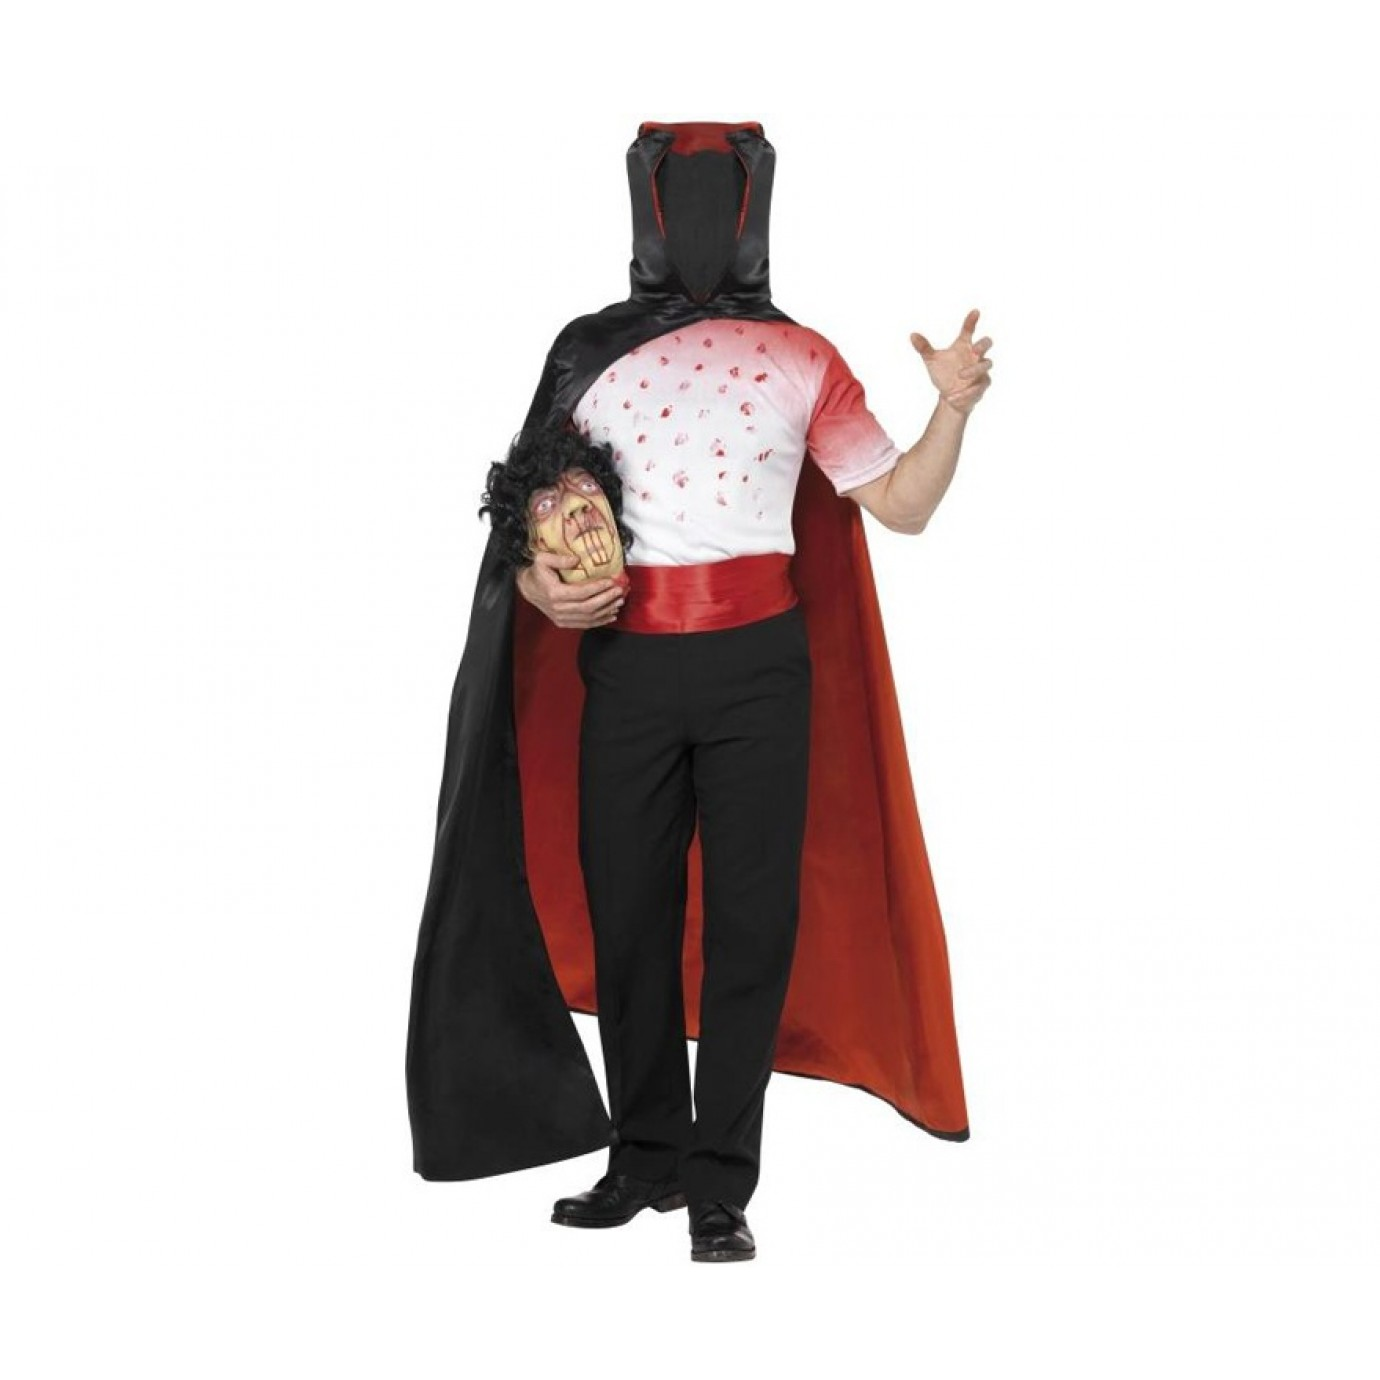 Adult Costume - Headless Man | Men's General | Male | Shop by Size ...